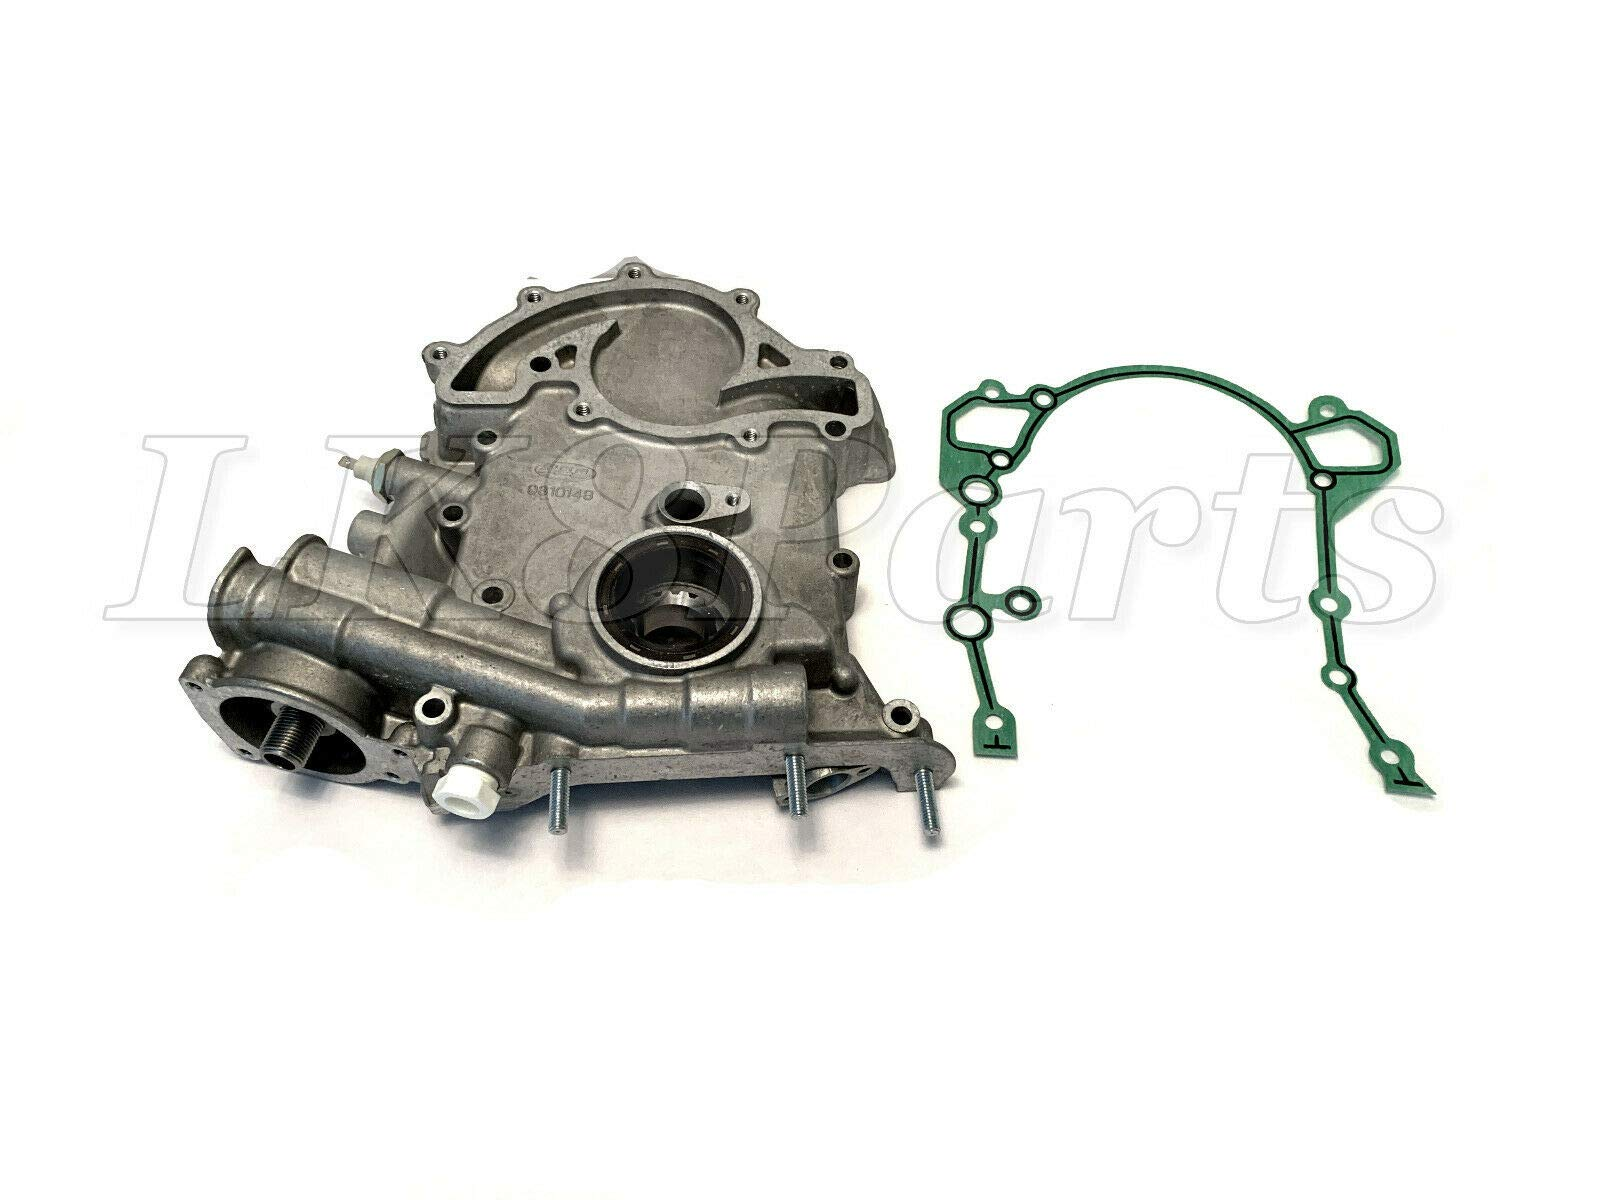 RANGE ROVER P38 95-99 DISCOVERY OIL PUMP FRONT ENGINE COVER W/GASKET ERR6438